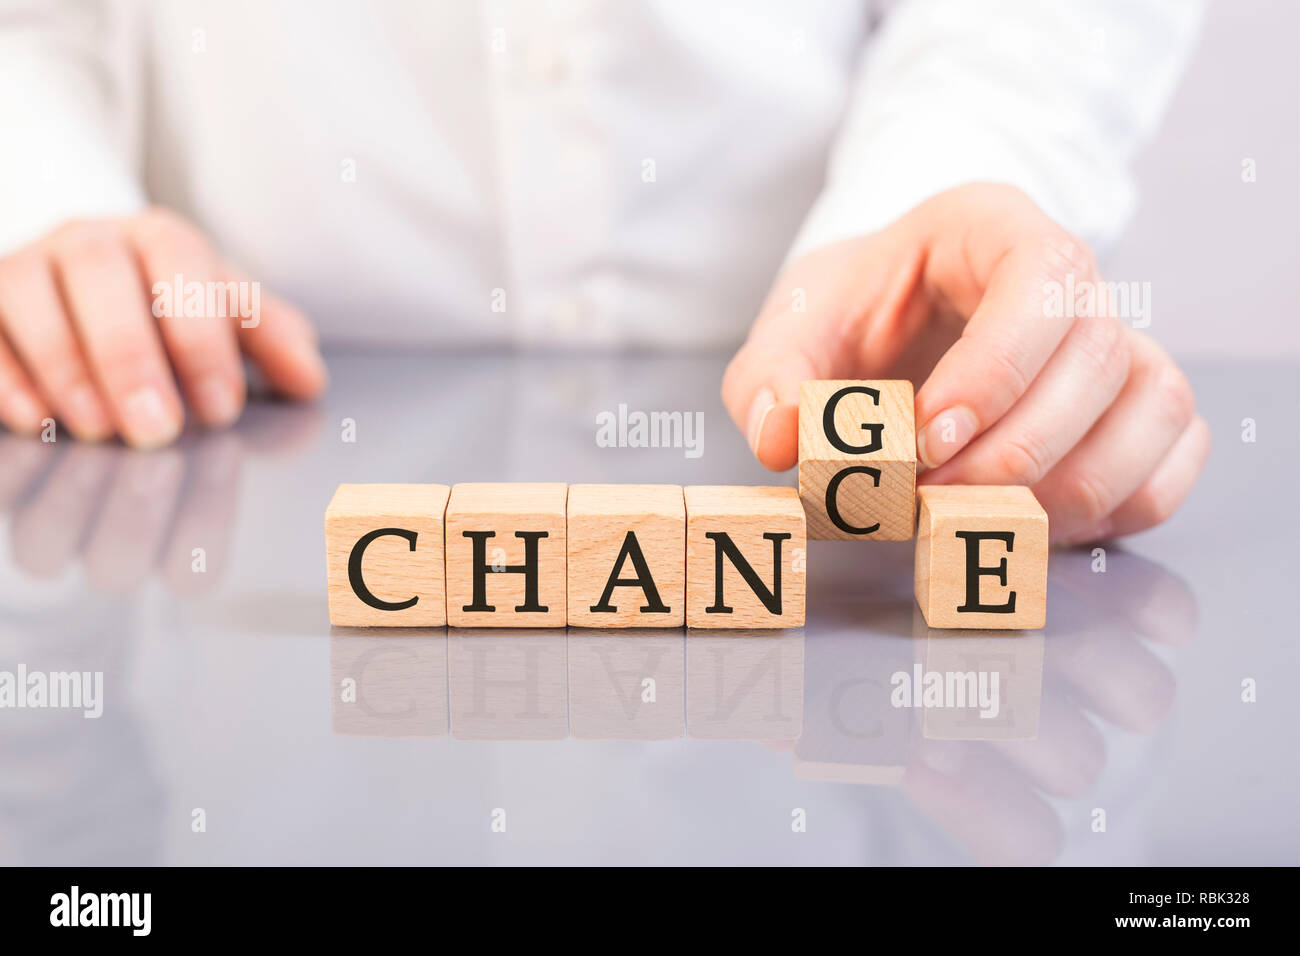 hand flip chance word to change word with wooden cubes - Stock Image